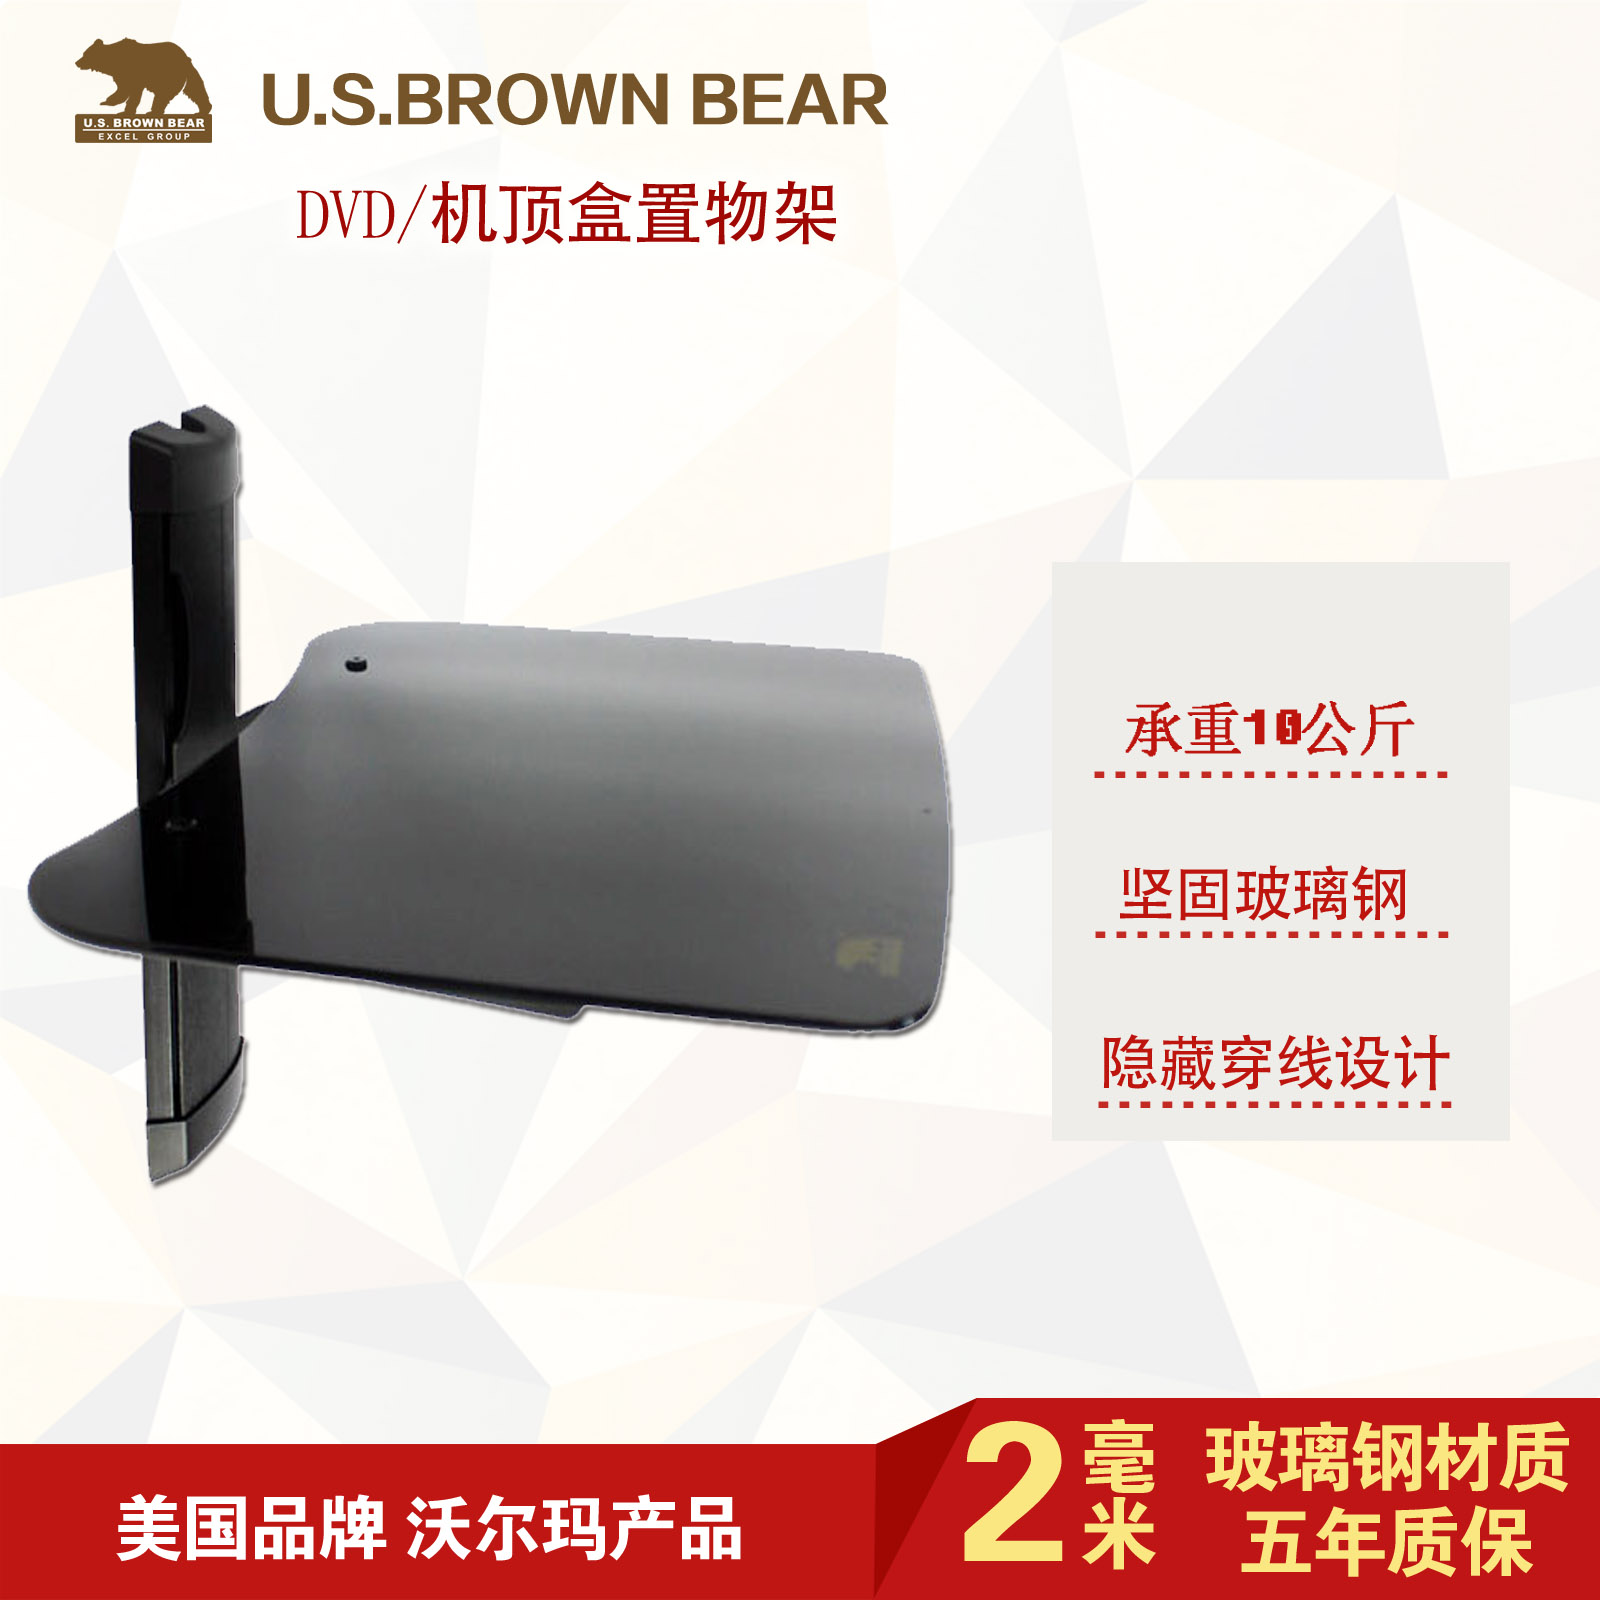 Us brown bear stb stb companion box rack dvd rack stb stand DS-C1